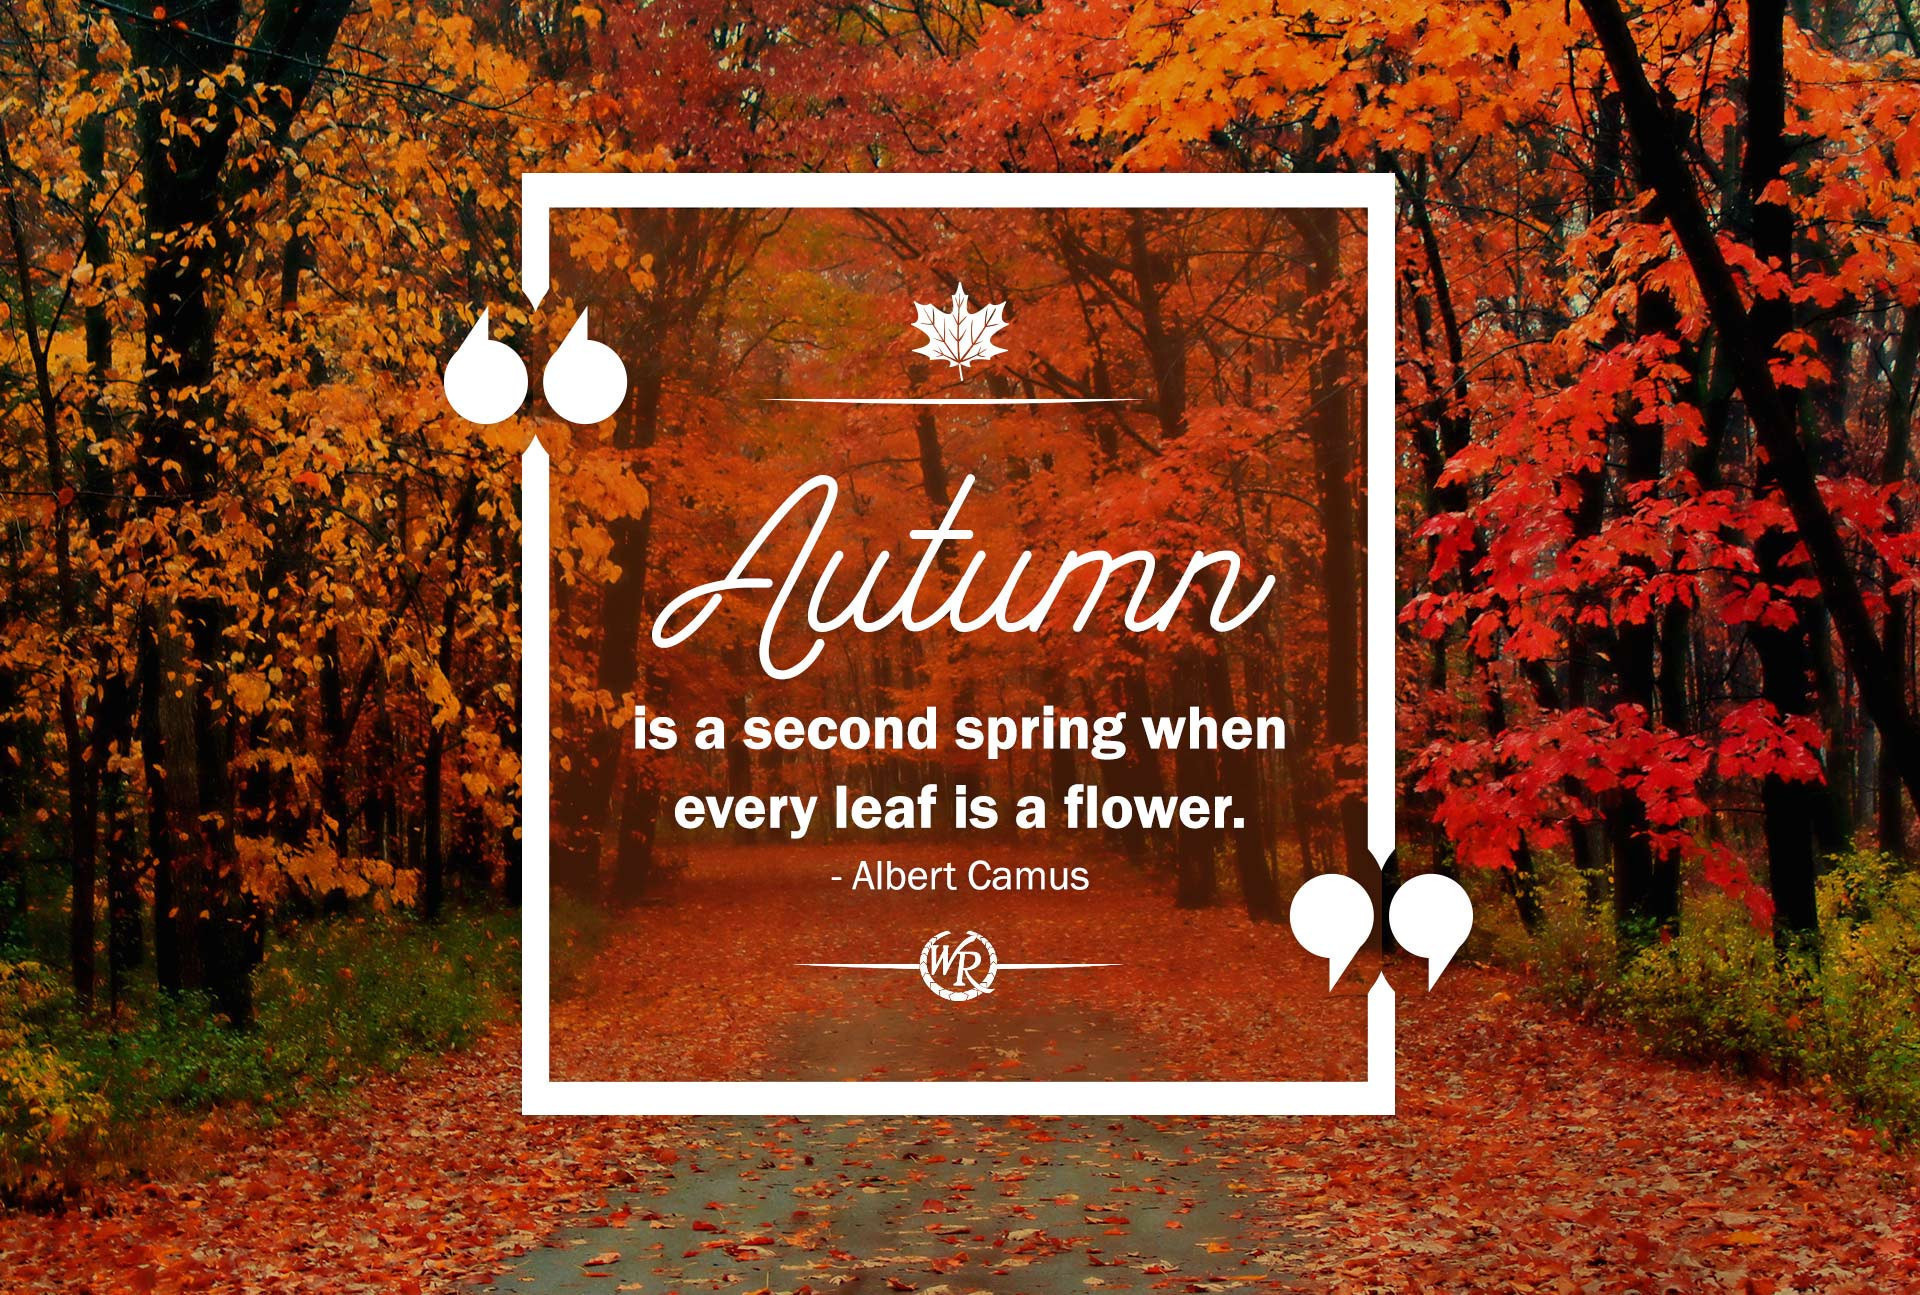 Autumn Is A Second Spring When Every Leaf Is A Flower | Albert Camus | Inspirational Travel Quotes